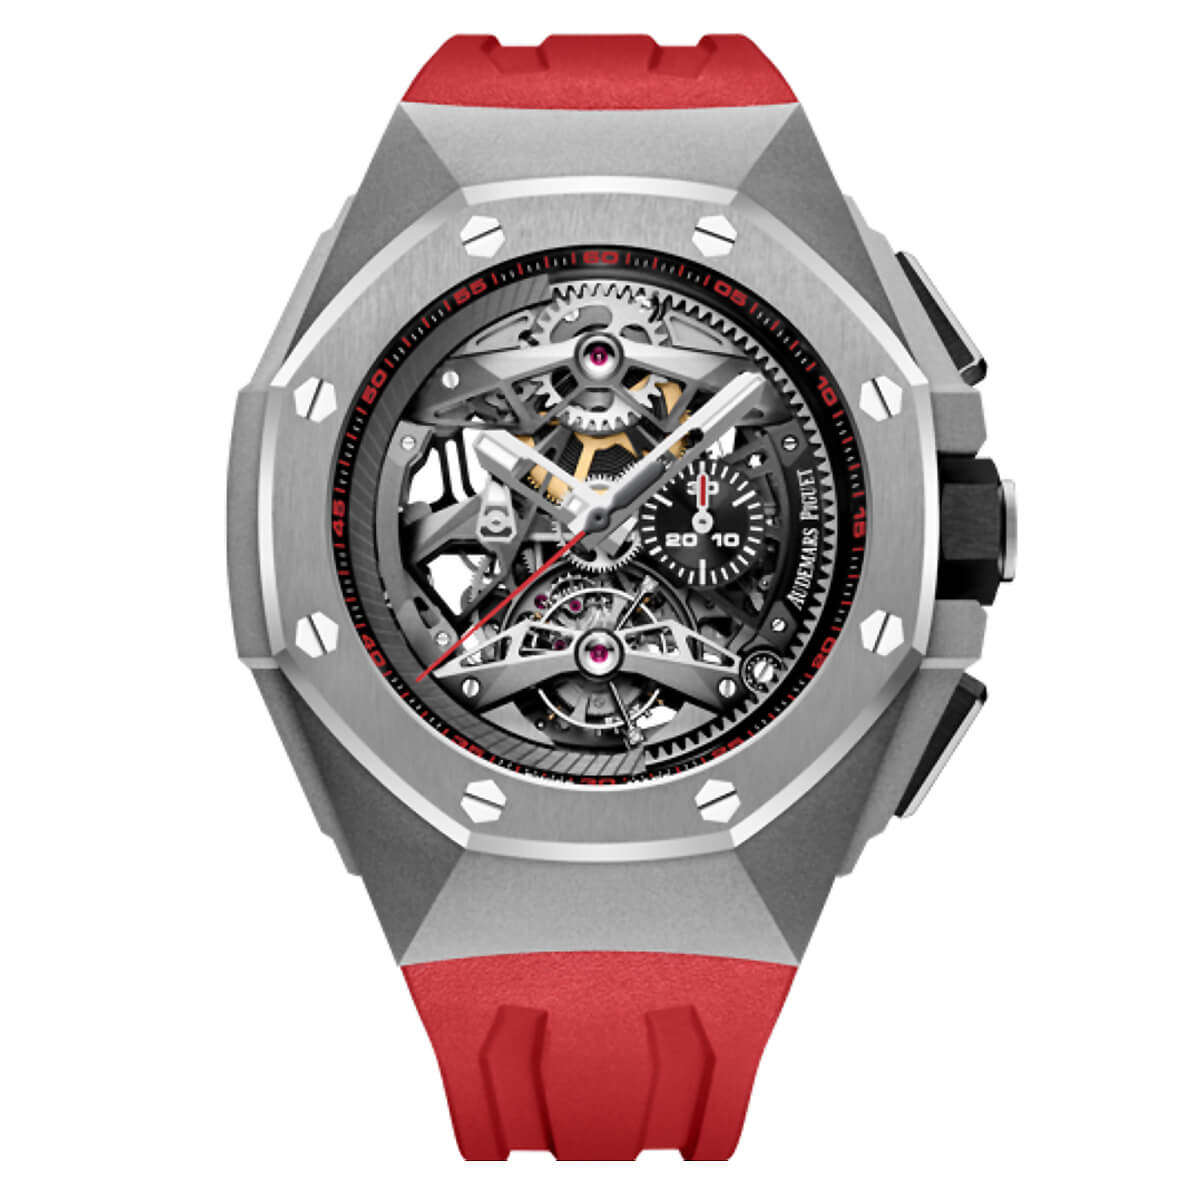 Audemars Piguet Royal Oak Concept Concept Tourbillon Chronograph